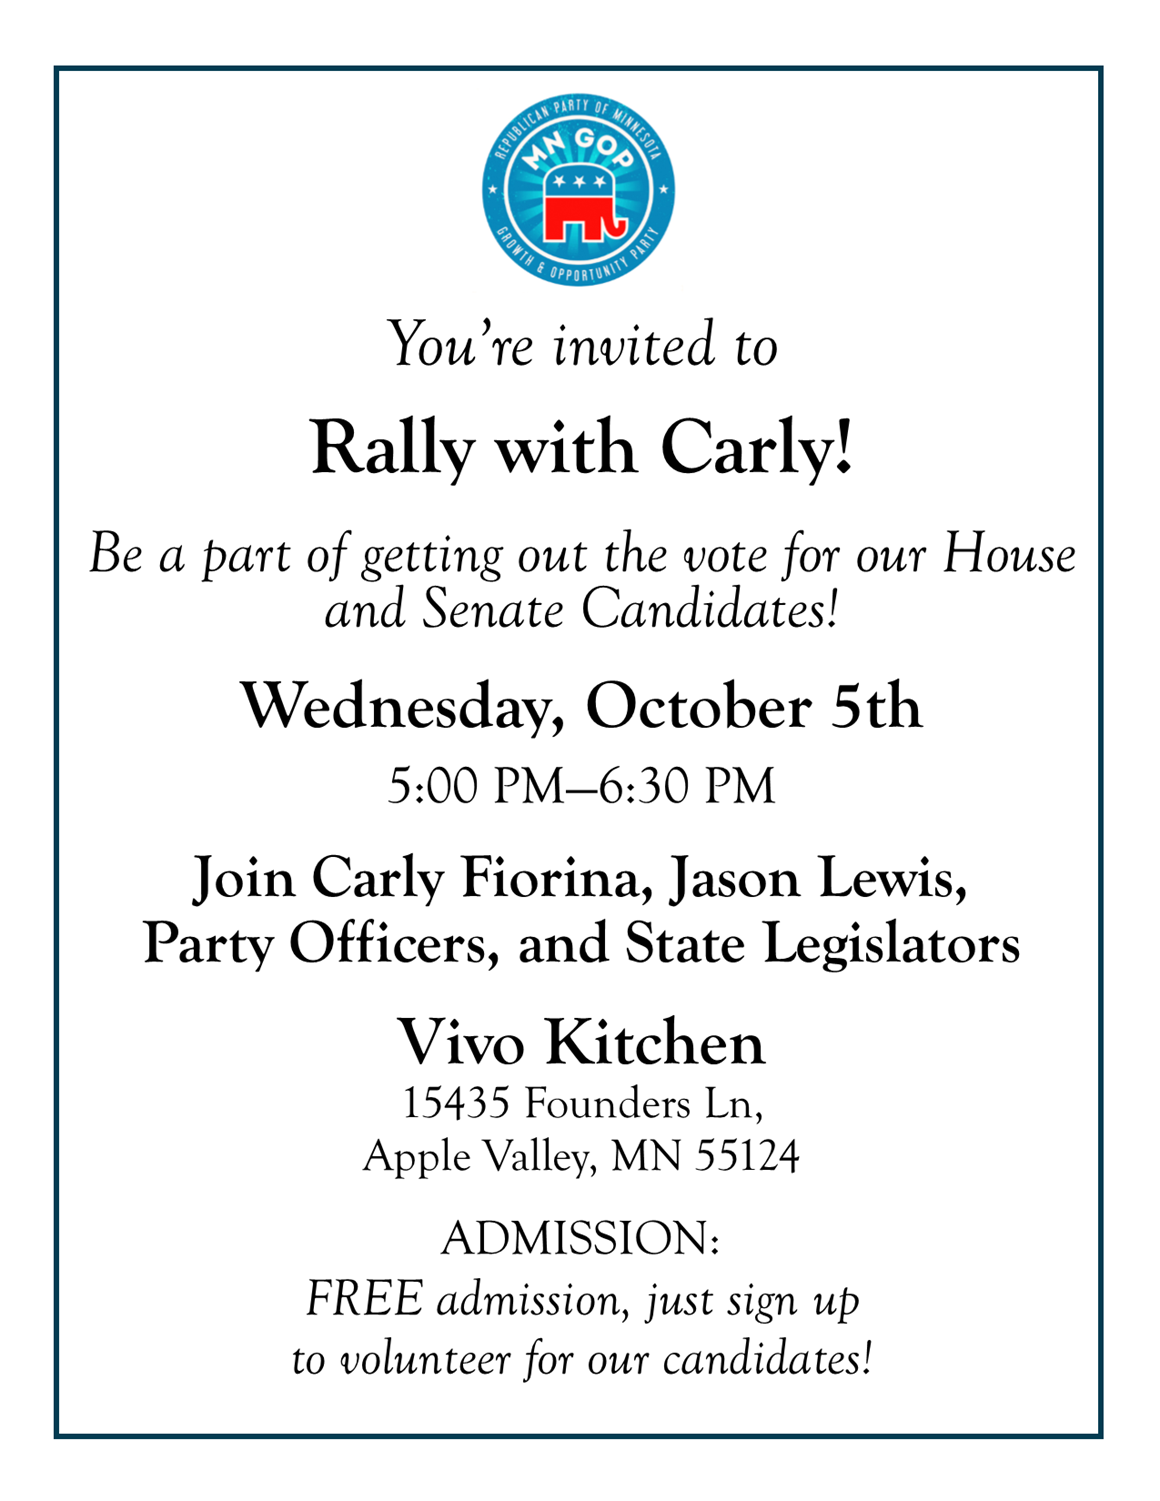 You're invited to  Rally with Carly!  Be a part of getting out the vote for our House and Senate Candidates!  Wednesday, October 5th   5:30 PM—6:30 PM  Join Carly Fiorina, Jason Lewis,  Party Officers, and State legislators   Vivo Kitchen 15435 Founders Ln,  Apple Valley, MN 55124   ADMISSION: FREE